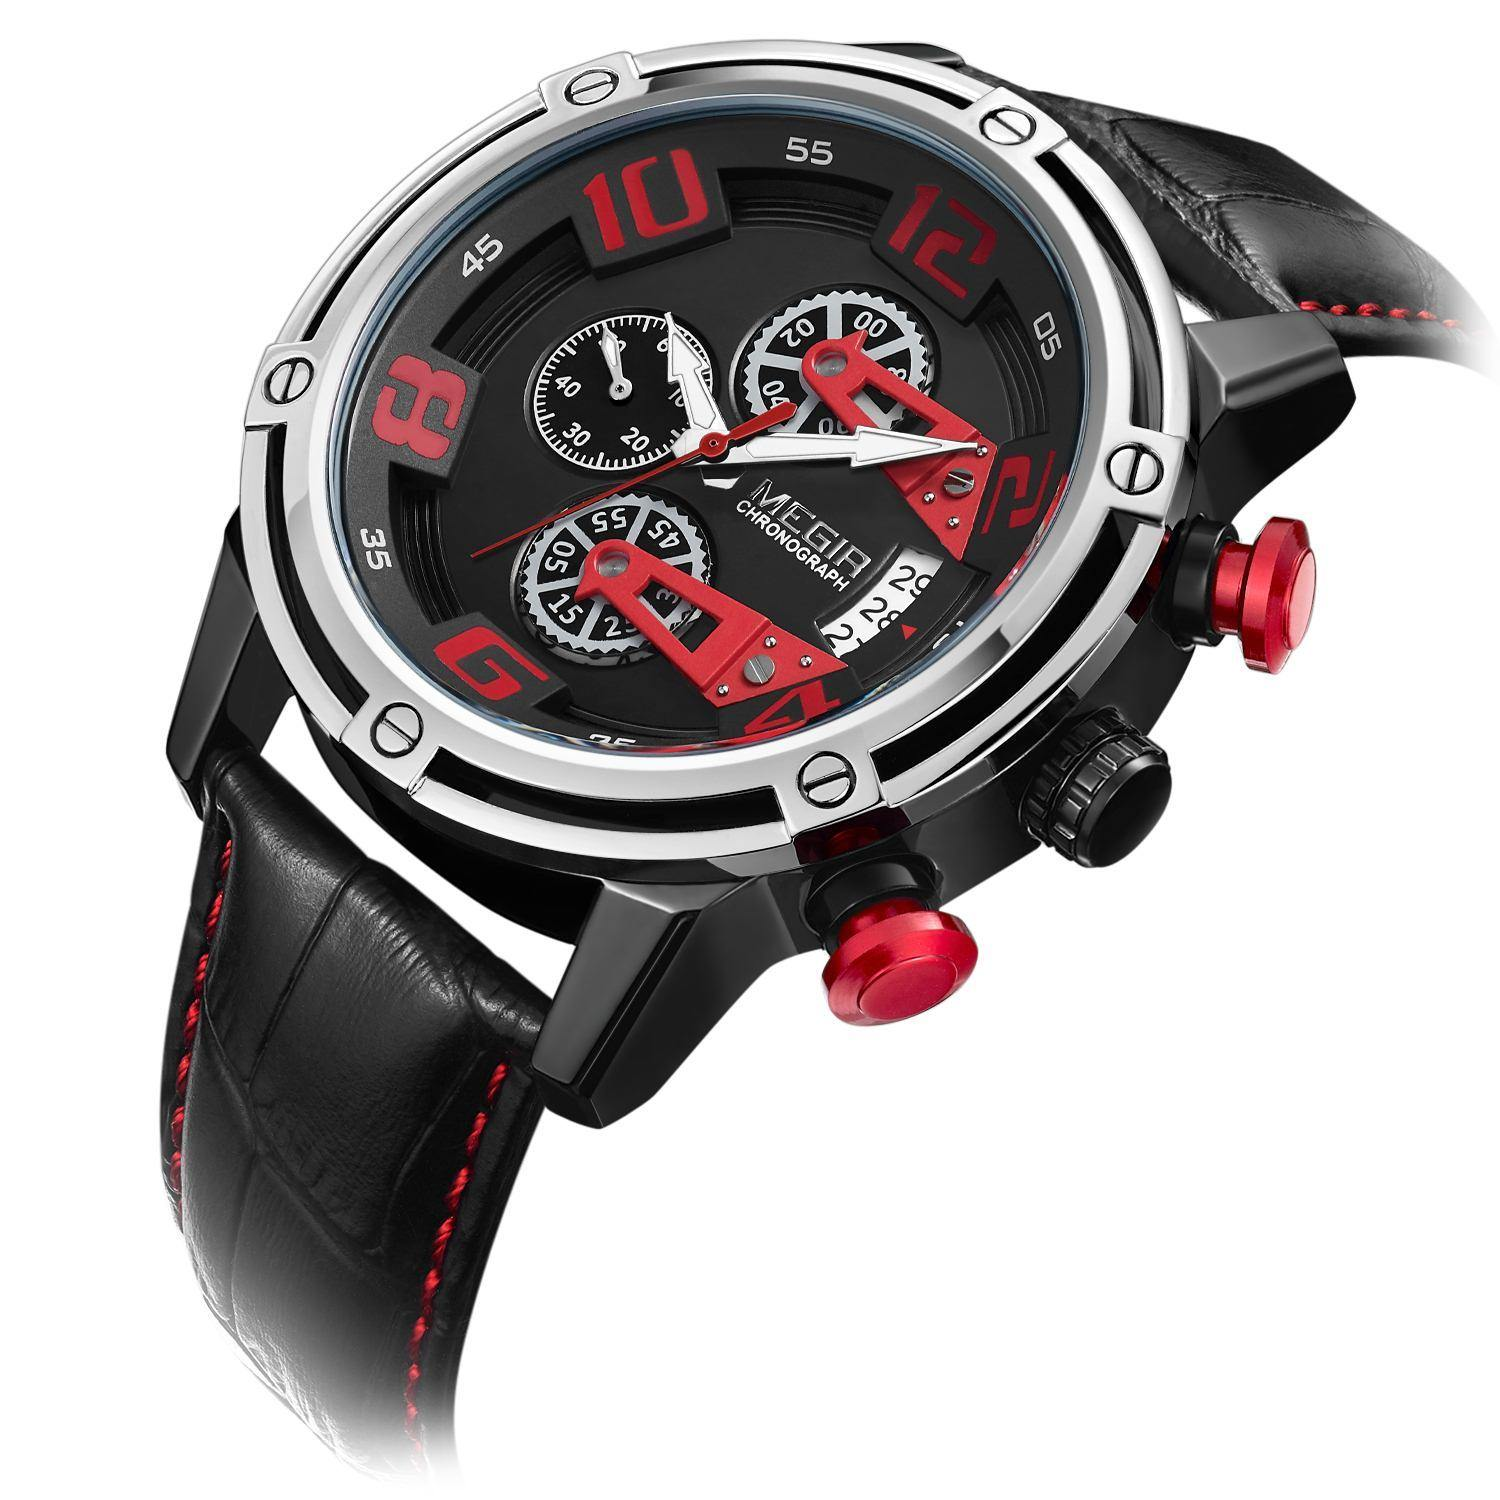 MEGIR Chronograph Sports Watch 2078 - MEGIR